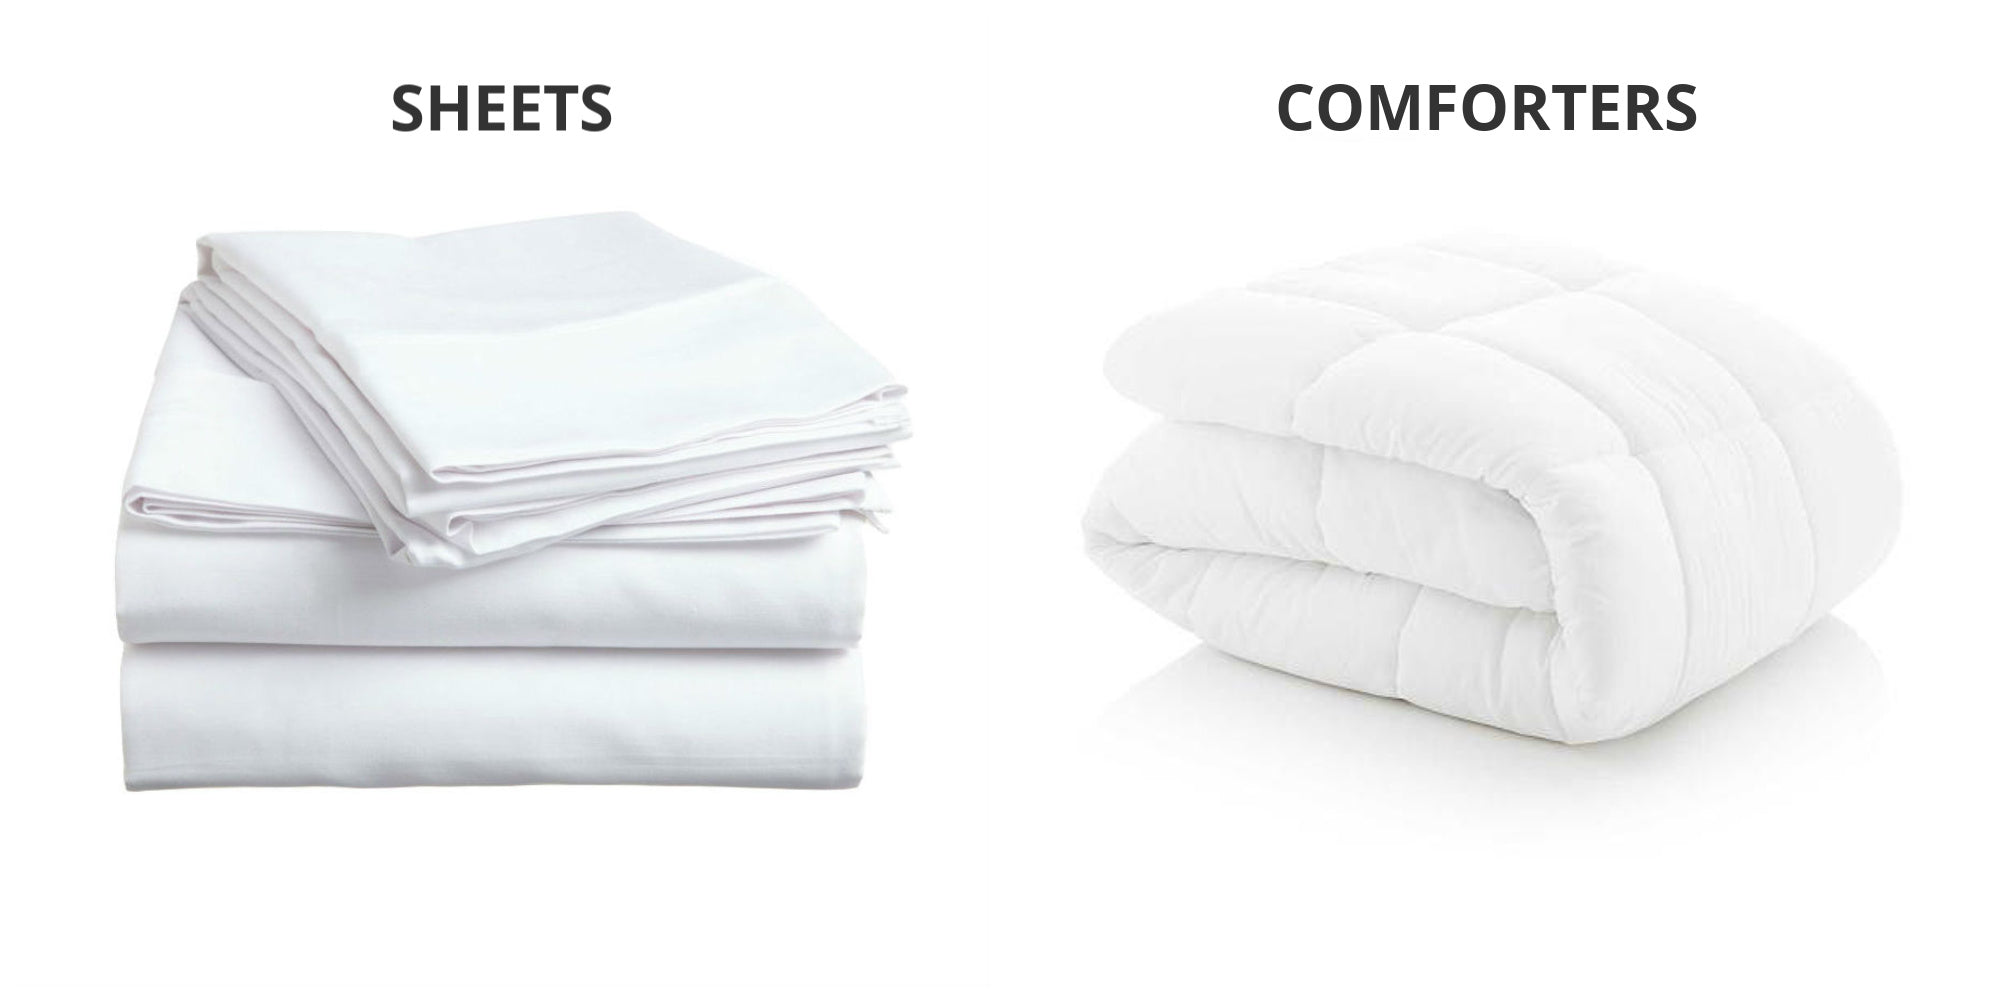 Sheets & Comforters | Good Host Shop